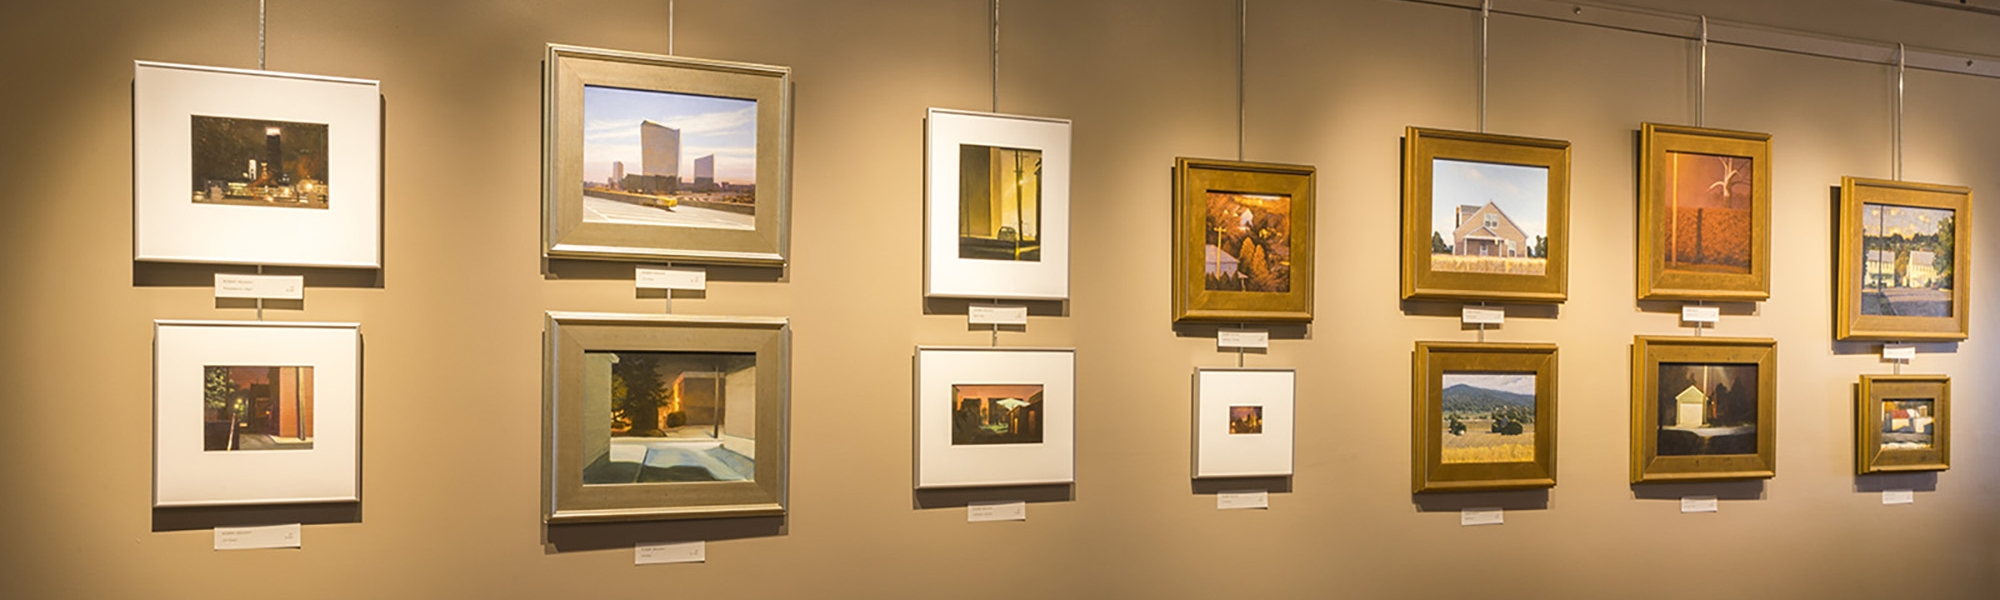 Lebanon picture frame gallery 3